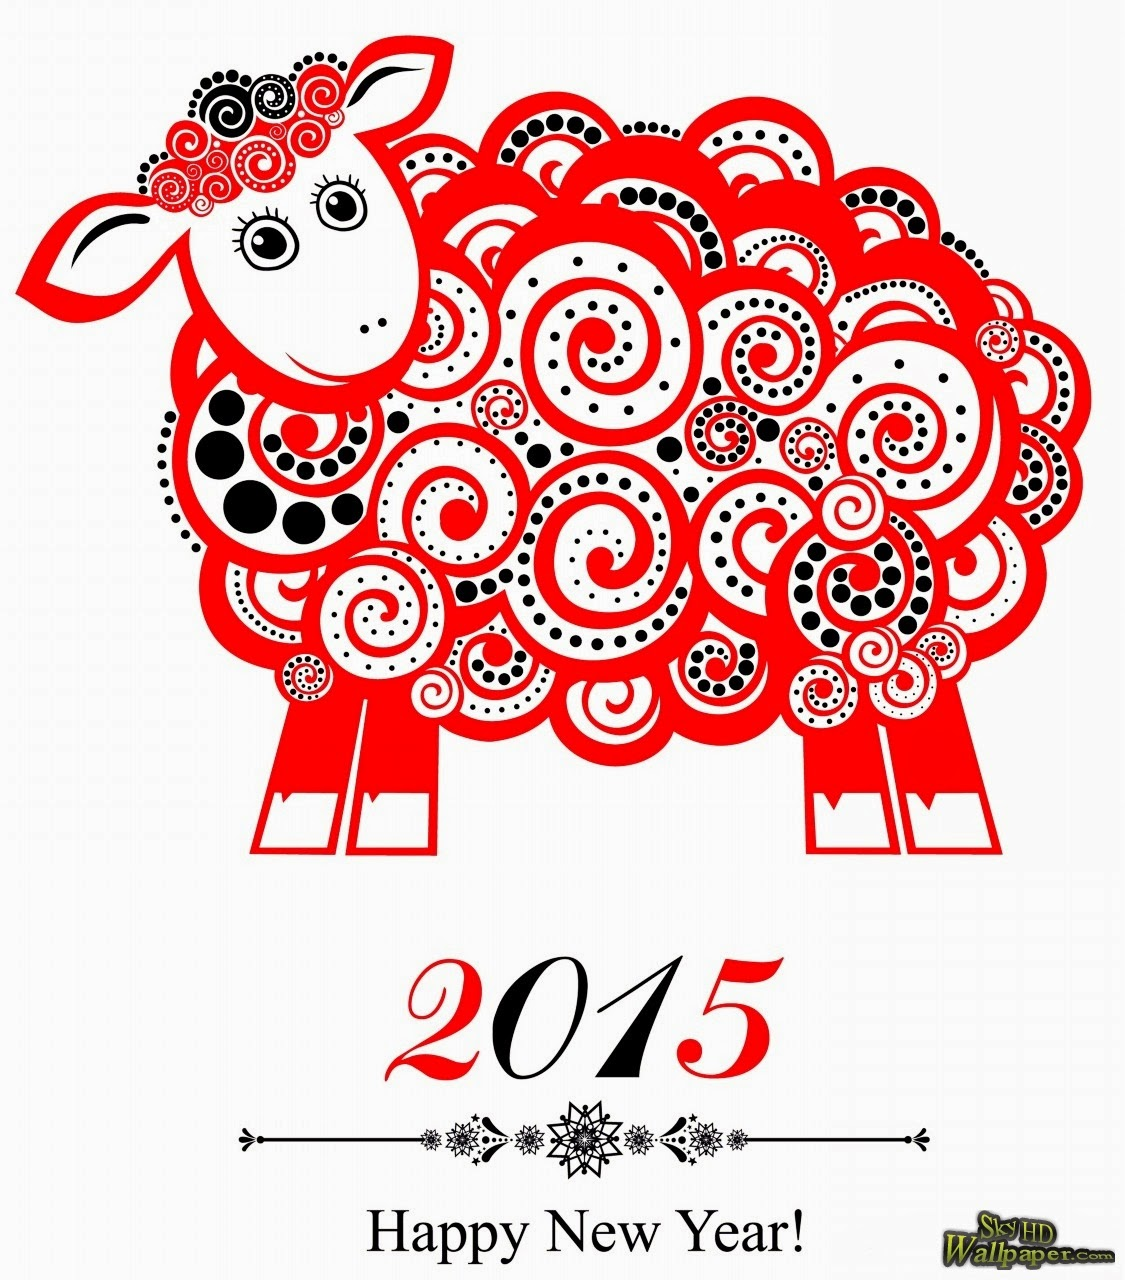 Chinese new year 2015 images hd wallpapers pictures greetings pics chinese new year 2015 images wallpapers pics greetings cards kristyandbryce Choice Image